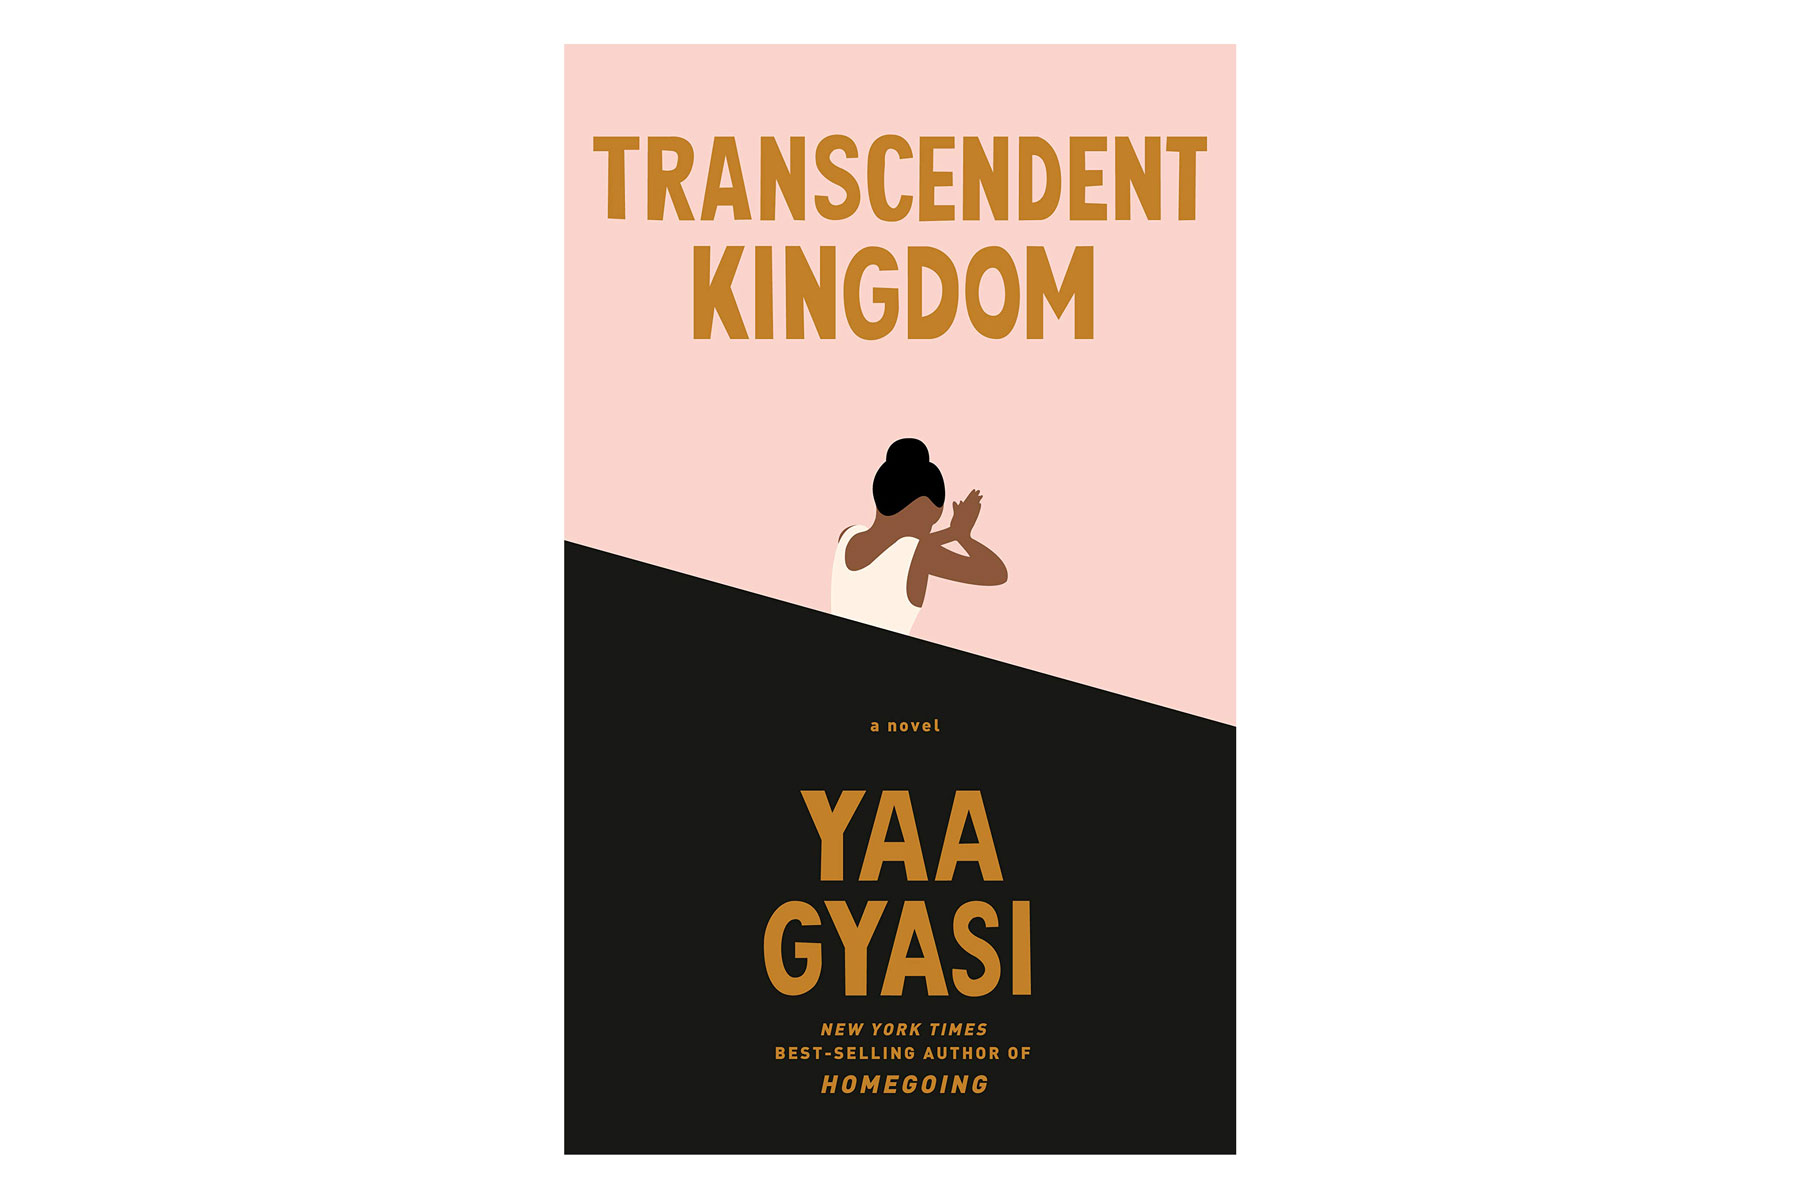 Transcendant Kingdom book